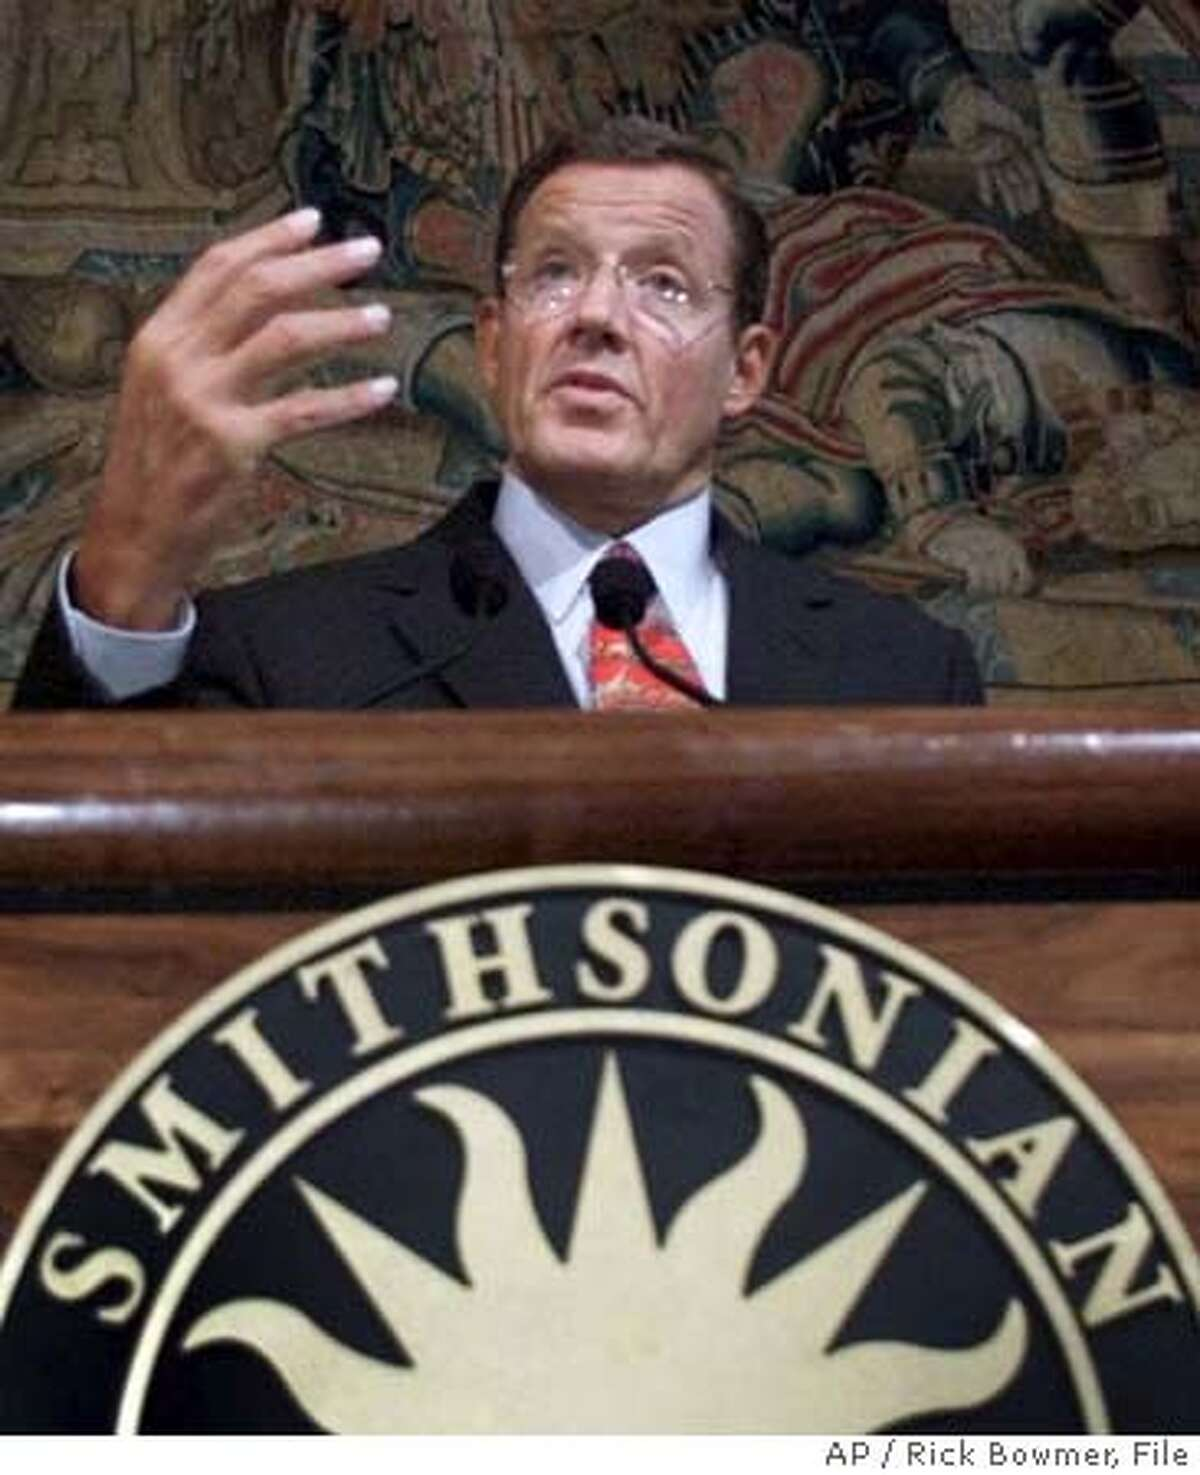 **FILE** Smithsonian Institution Secretary Lawrence Small speaks during a Washington news conference in this May 7, 2001 file photo. Small, the head of the Smithsonian Institution, will plead guilty to violating a federal law protecting endangered birds, the agency announced Tuesday, Jan. 20, 2004. (AP Photo/Rick Bowmer, File) Lawrence Small bought the headdresses before he was hired to run the Smithsonian. A MAY 7, 2001 FILE PHOTO